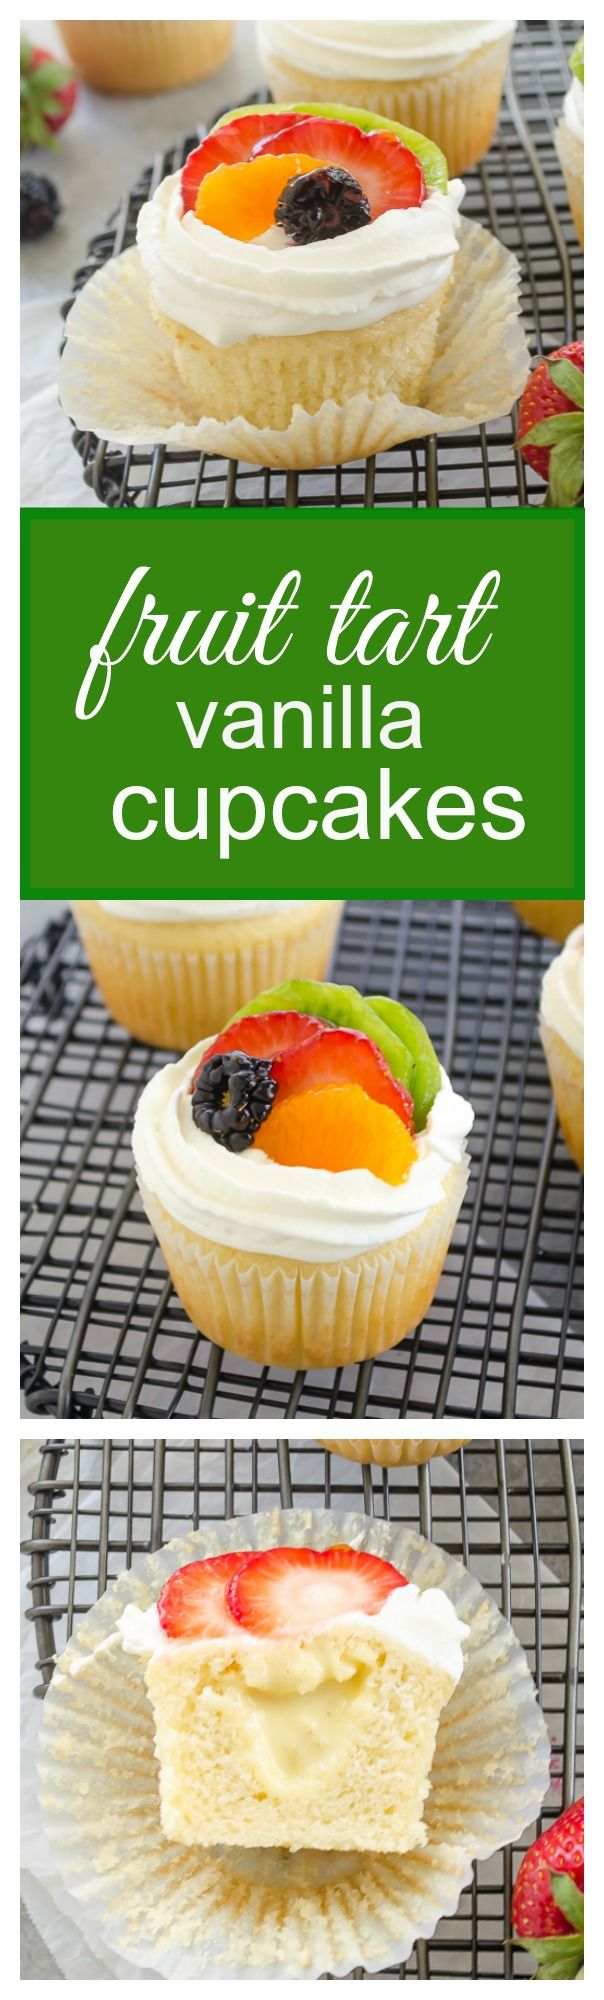 Fruit Tart Vanilla Cupcakes are light vanilla cupcakes filled with pastry cream and topped with fresh fruit and whipped cream. They're like a fresh fruit tart in cupcake form! @FlavortheMoment #cupcakes #fruit #tart #pastrycream #dessert #cake